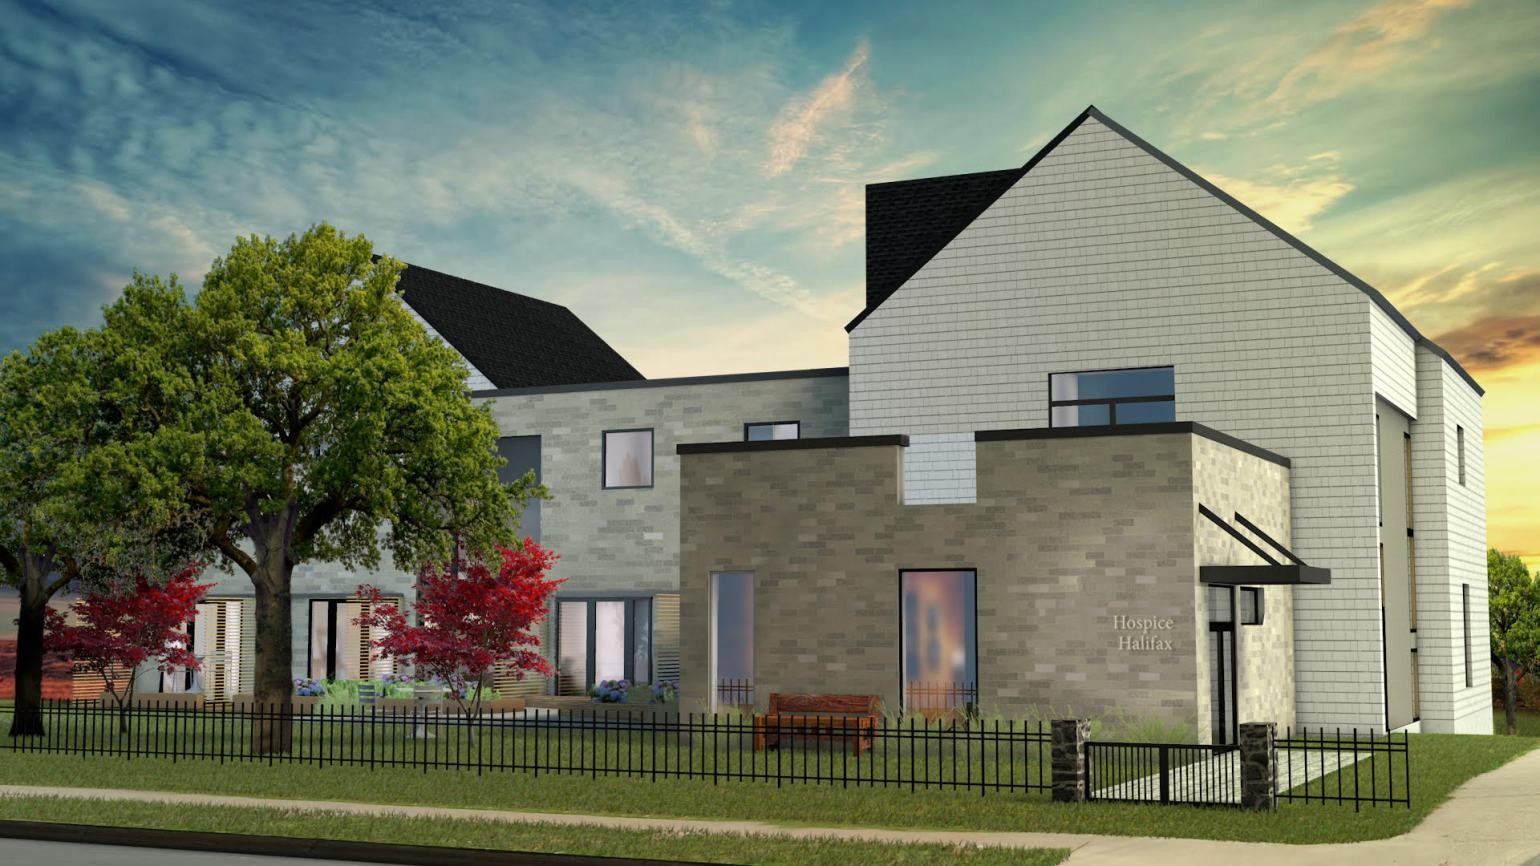 Front Rendering of Hospice Residence